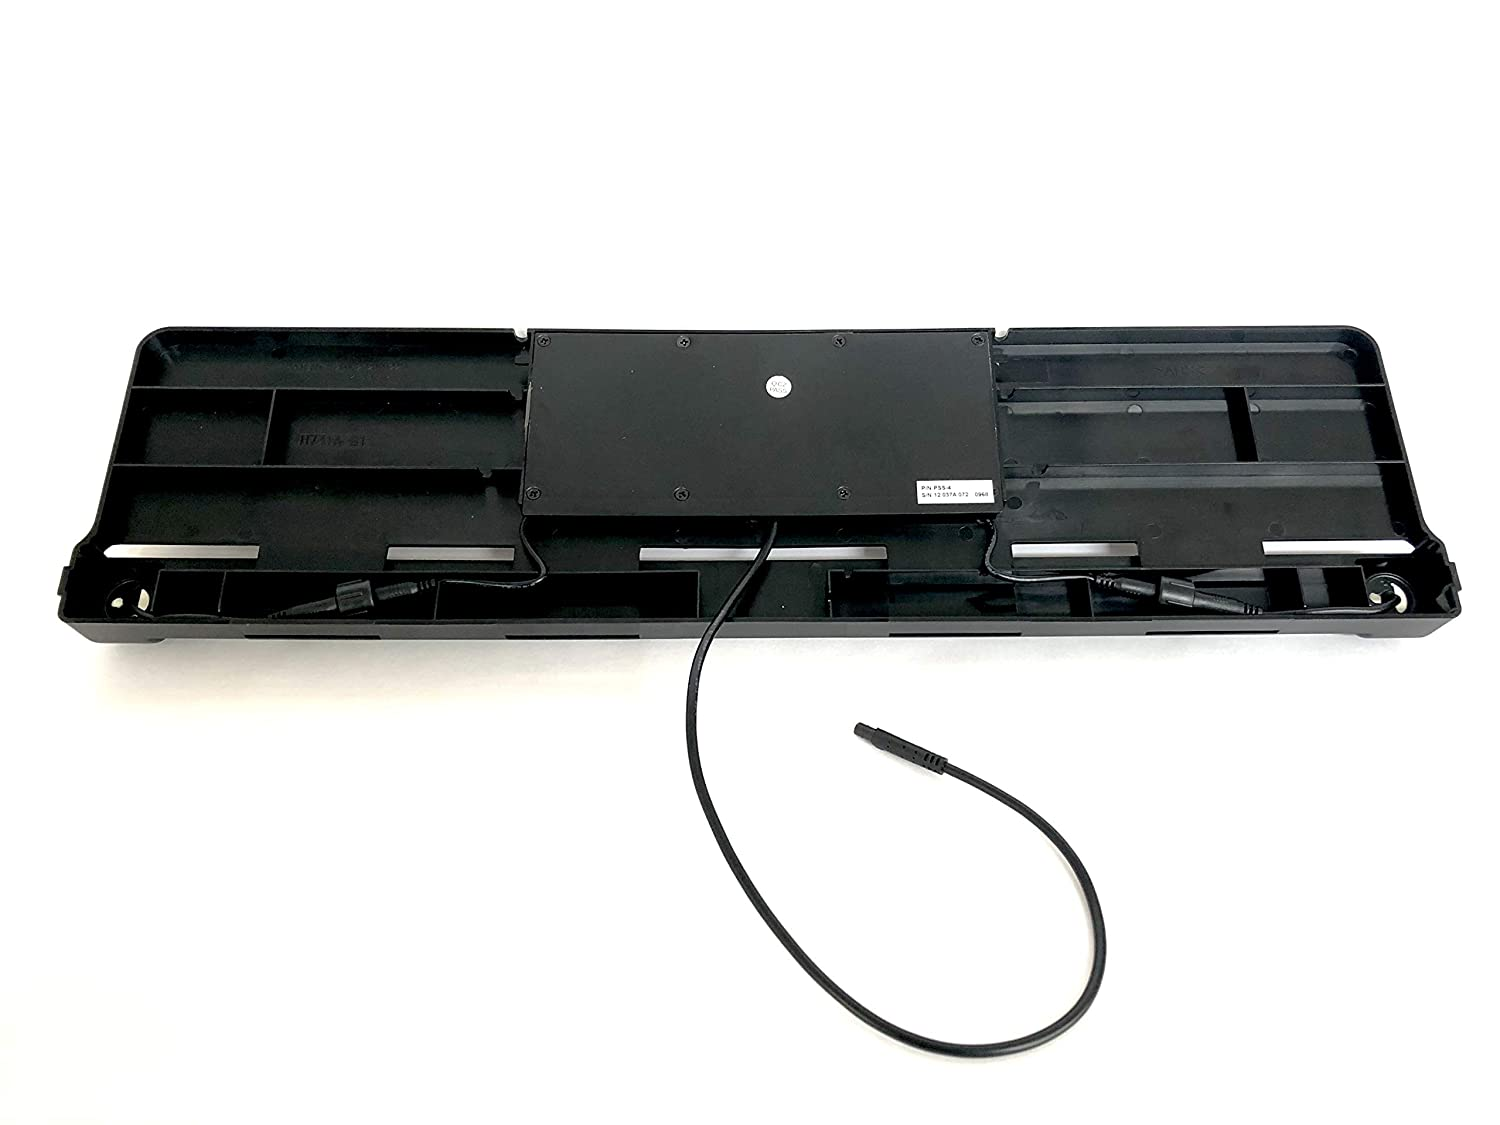 No need to drill the bumper Black Melchioni 380003065 Parking Sensor Kit PSS-4 with License Plate Holder Equipped with Alarm Sound Latest Generation